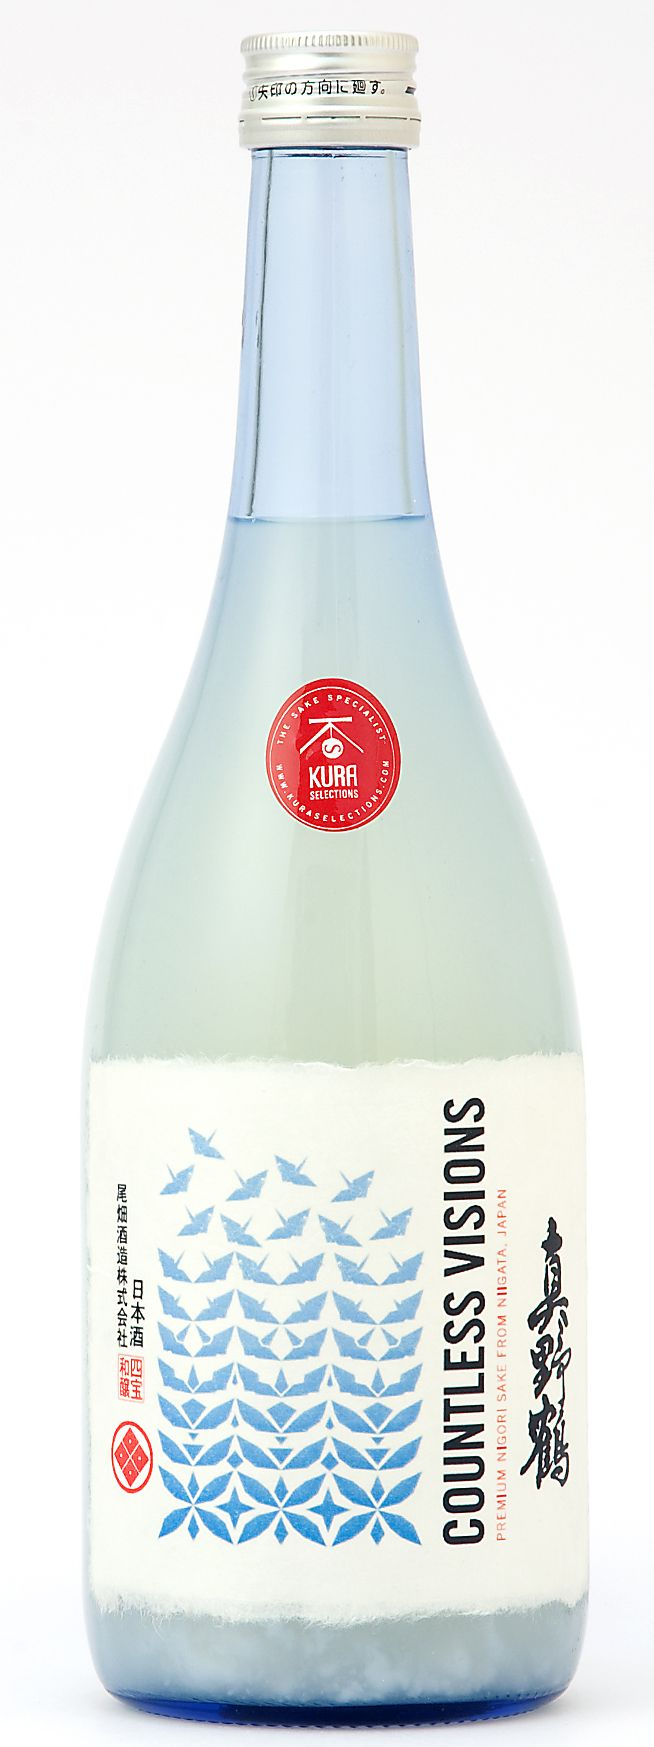 "Manotsuru ""Countless Visions"" sake from Kura Selections. #japanese #package #design"